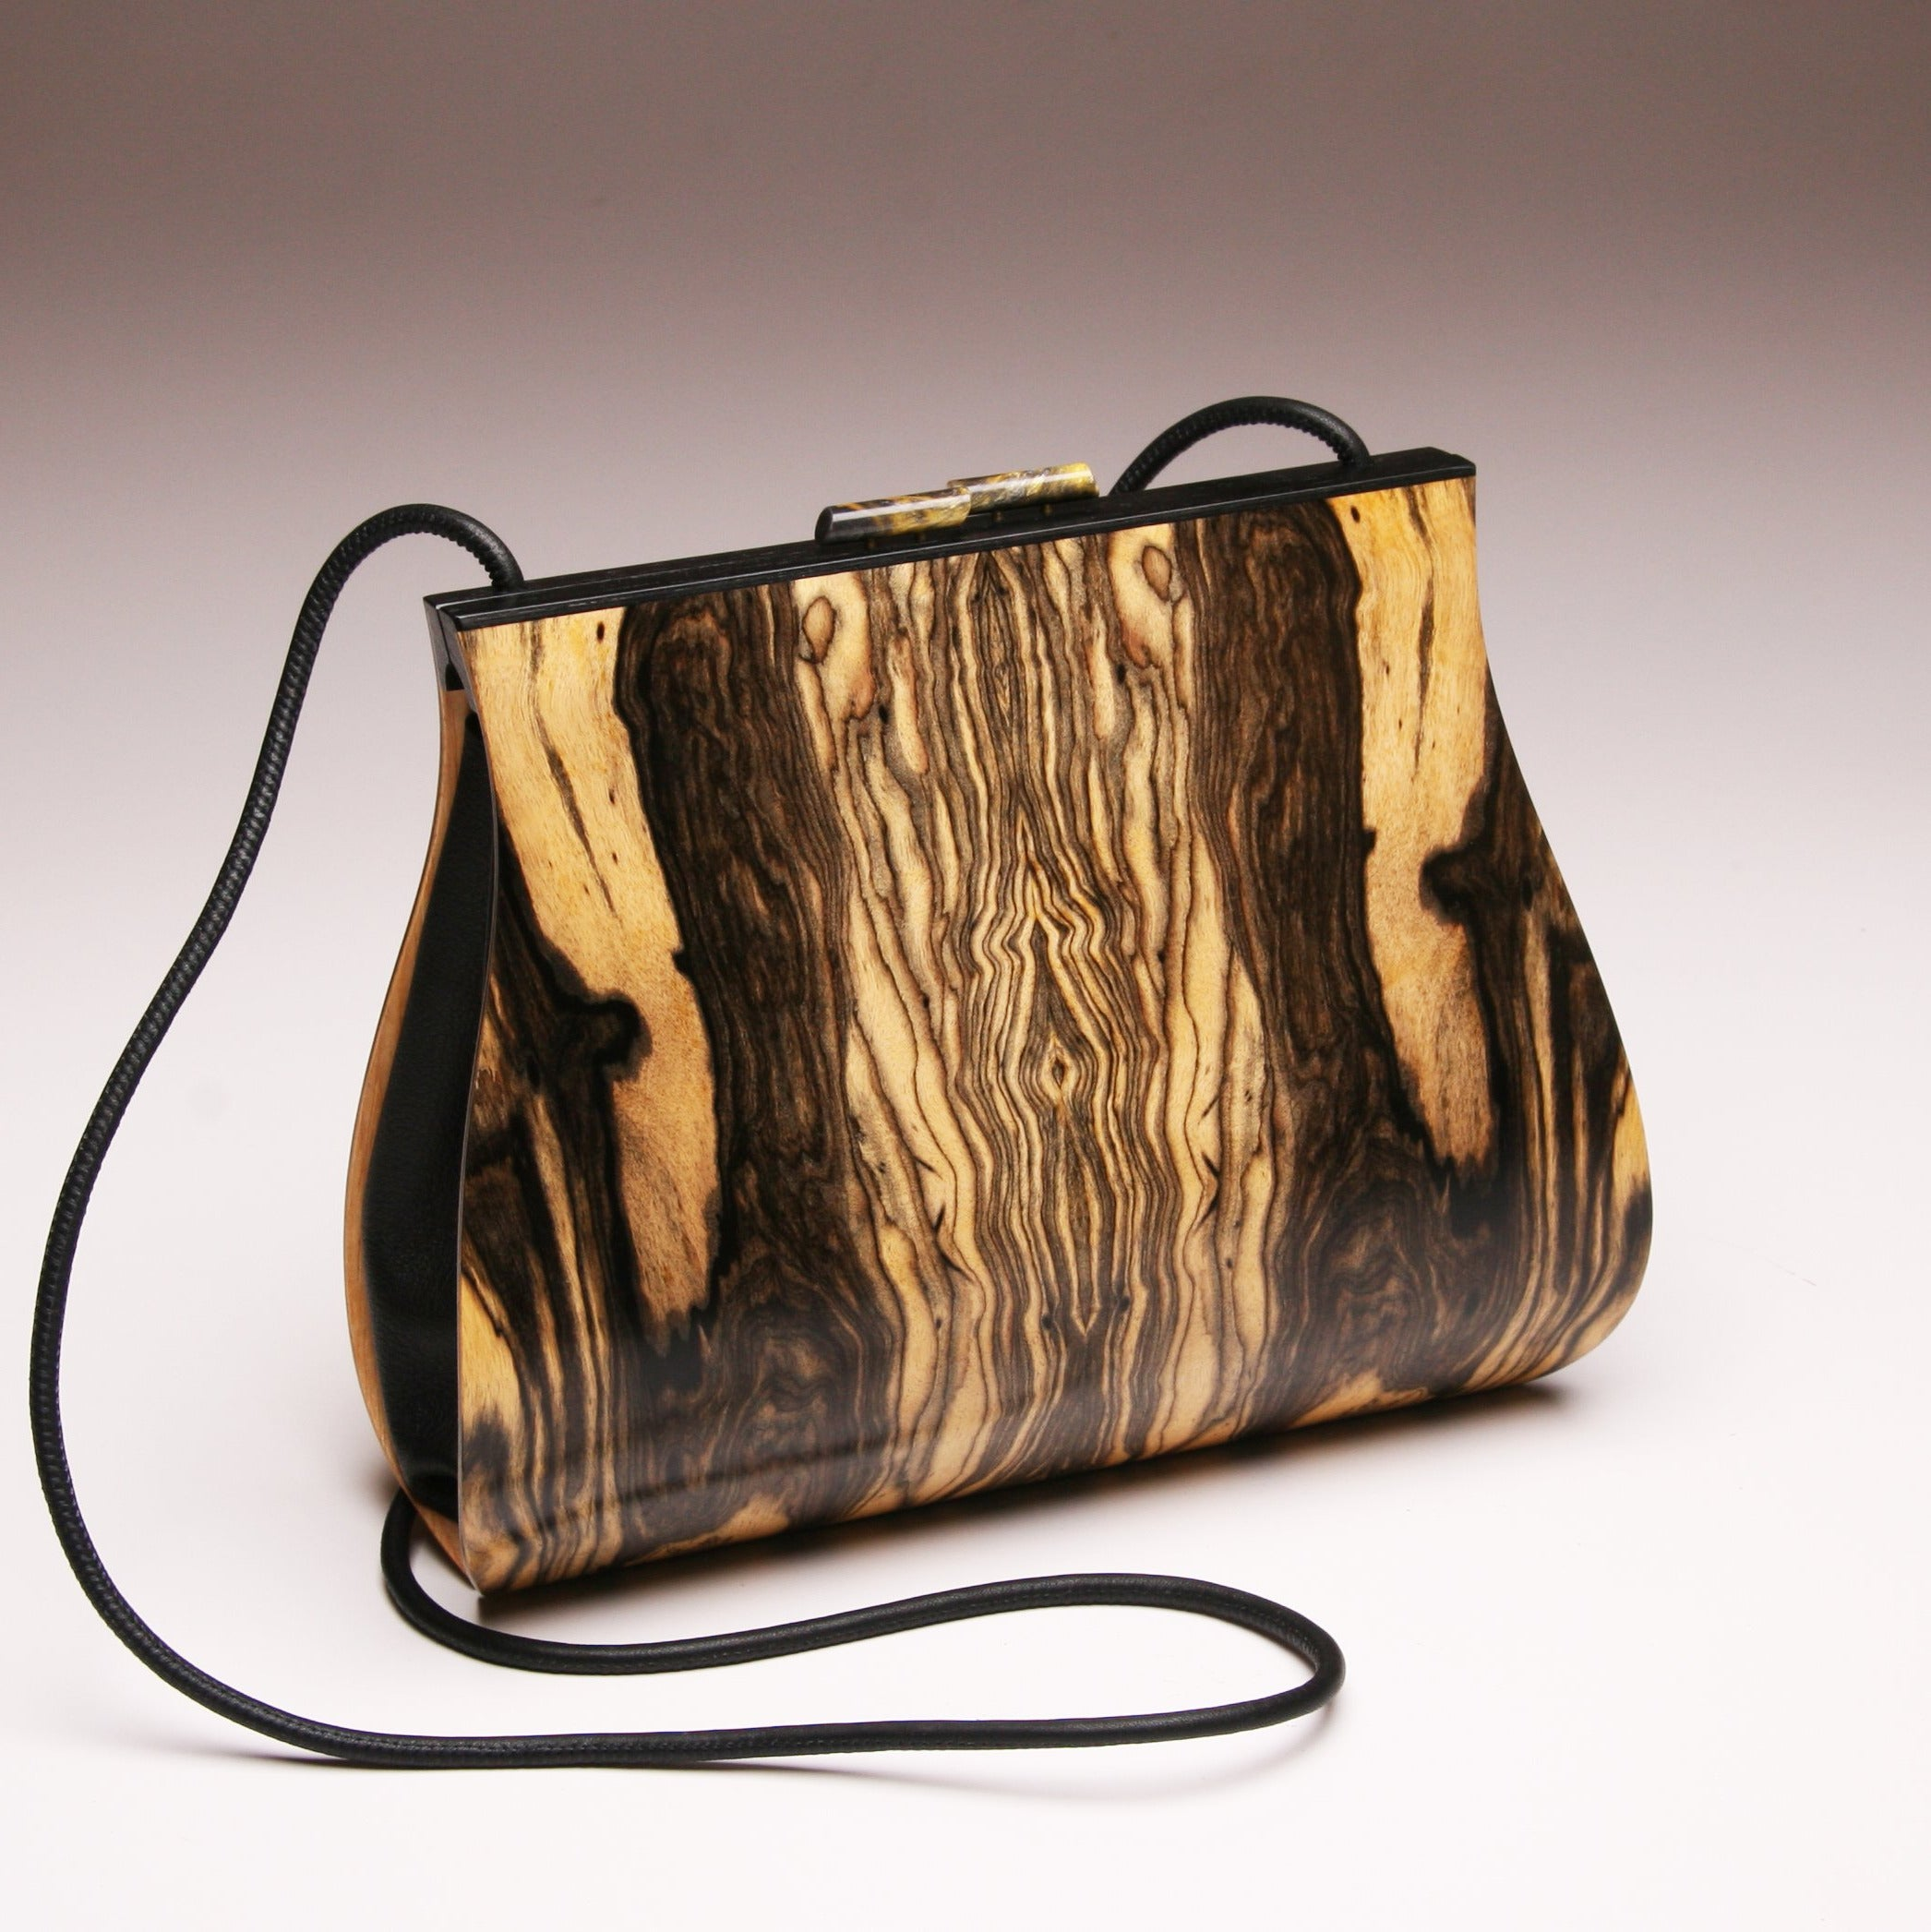 """Dianella"" Large Wood Handbag-Single Strap - Book-Matched Royal Ebony (contact for availability)"